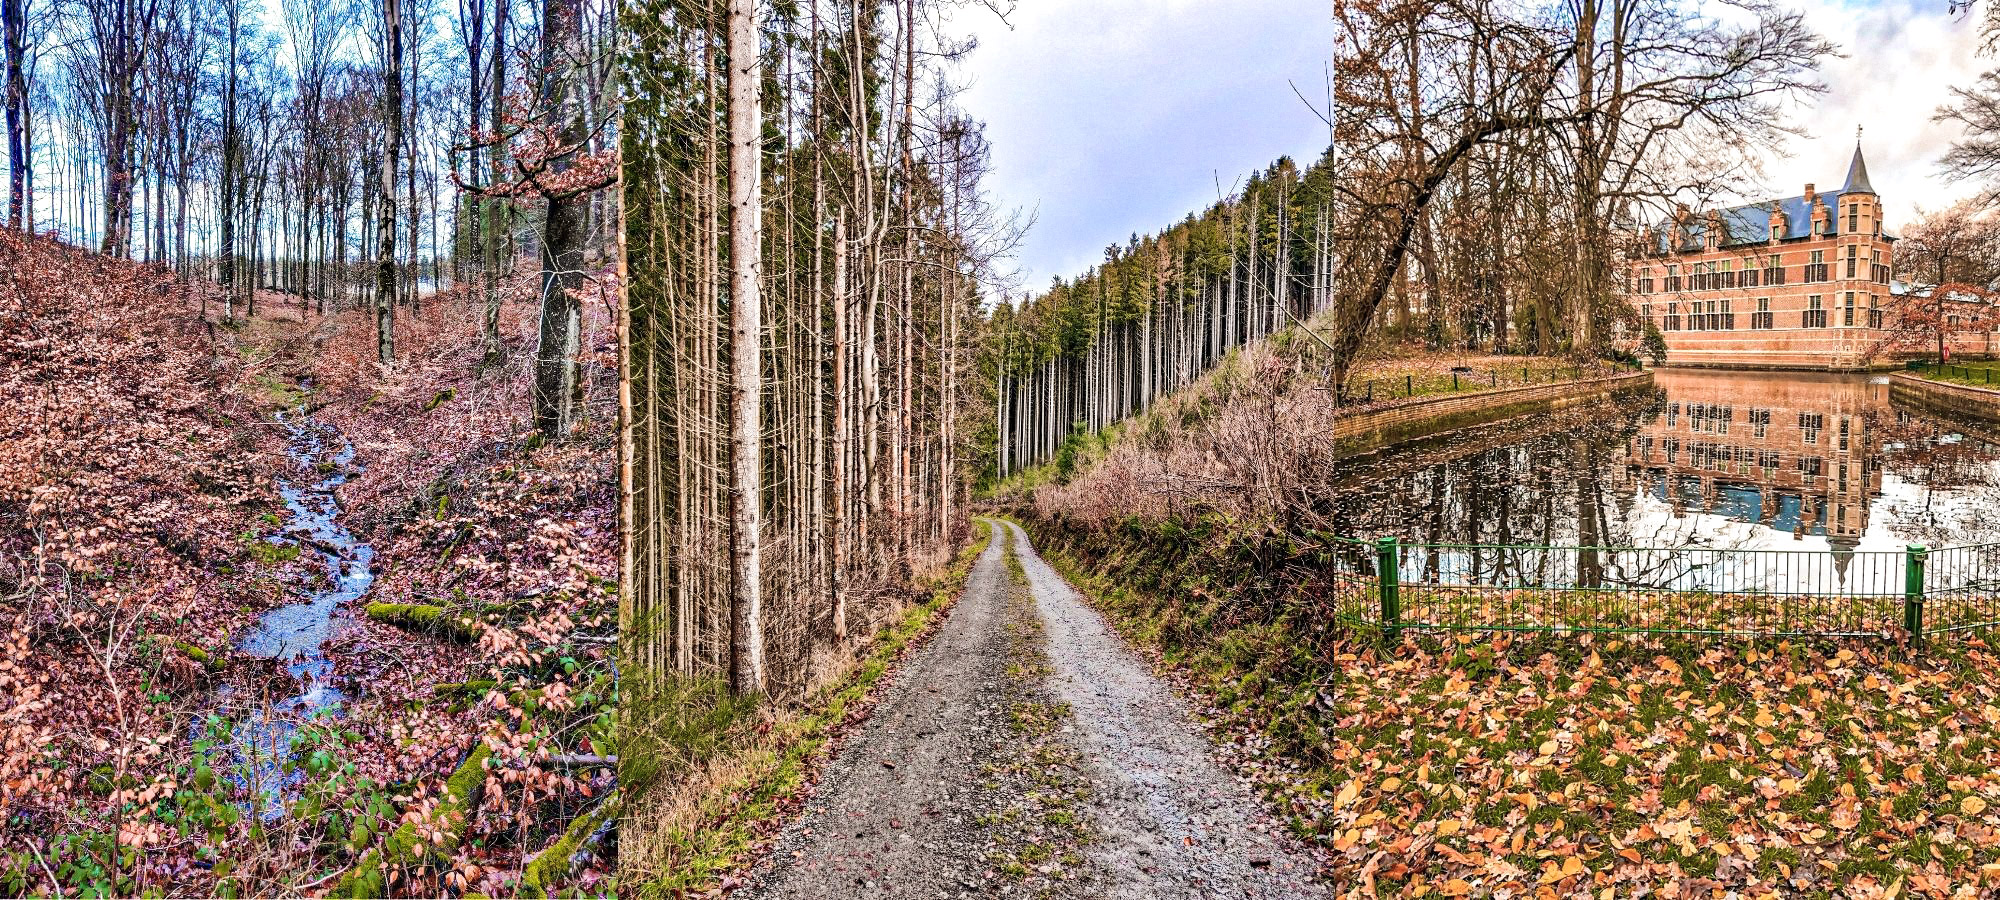 Three nature shots of Belgium across the country on walking paths